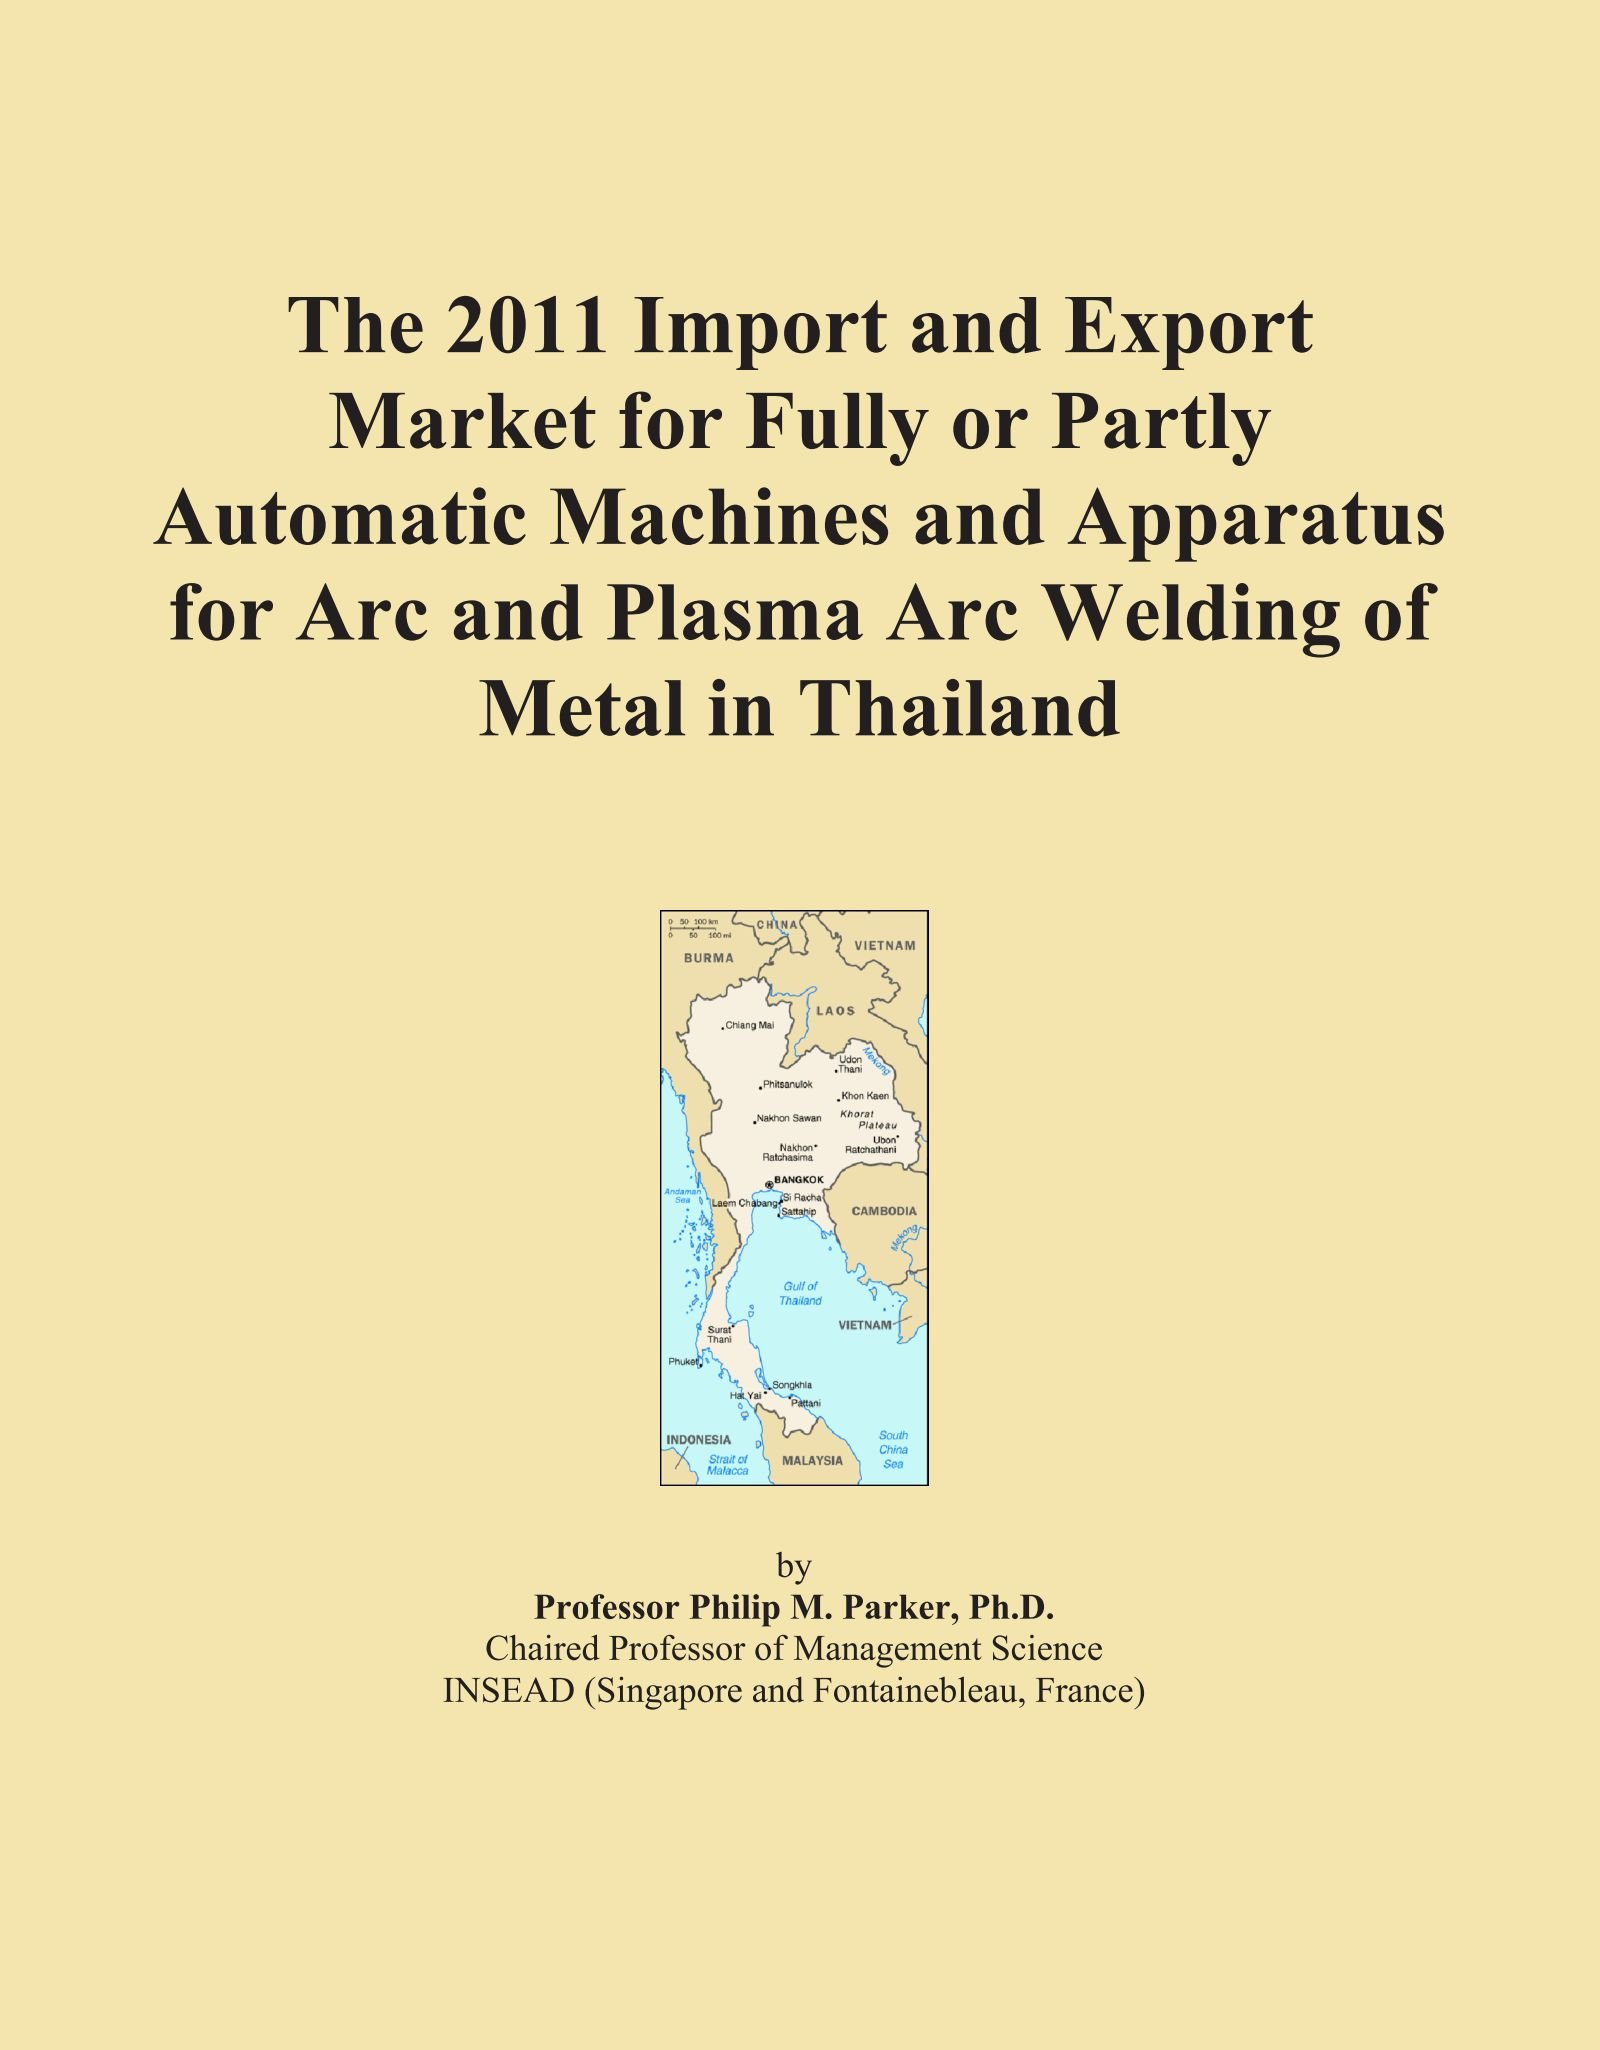 Download The 2011 Import and Export Market for Fully or Partly Automatic Machines and Apparatus for Arc and Plasma Arc Welding of Metal in Thailand ebook